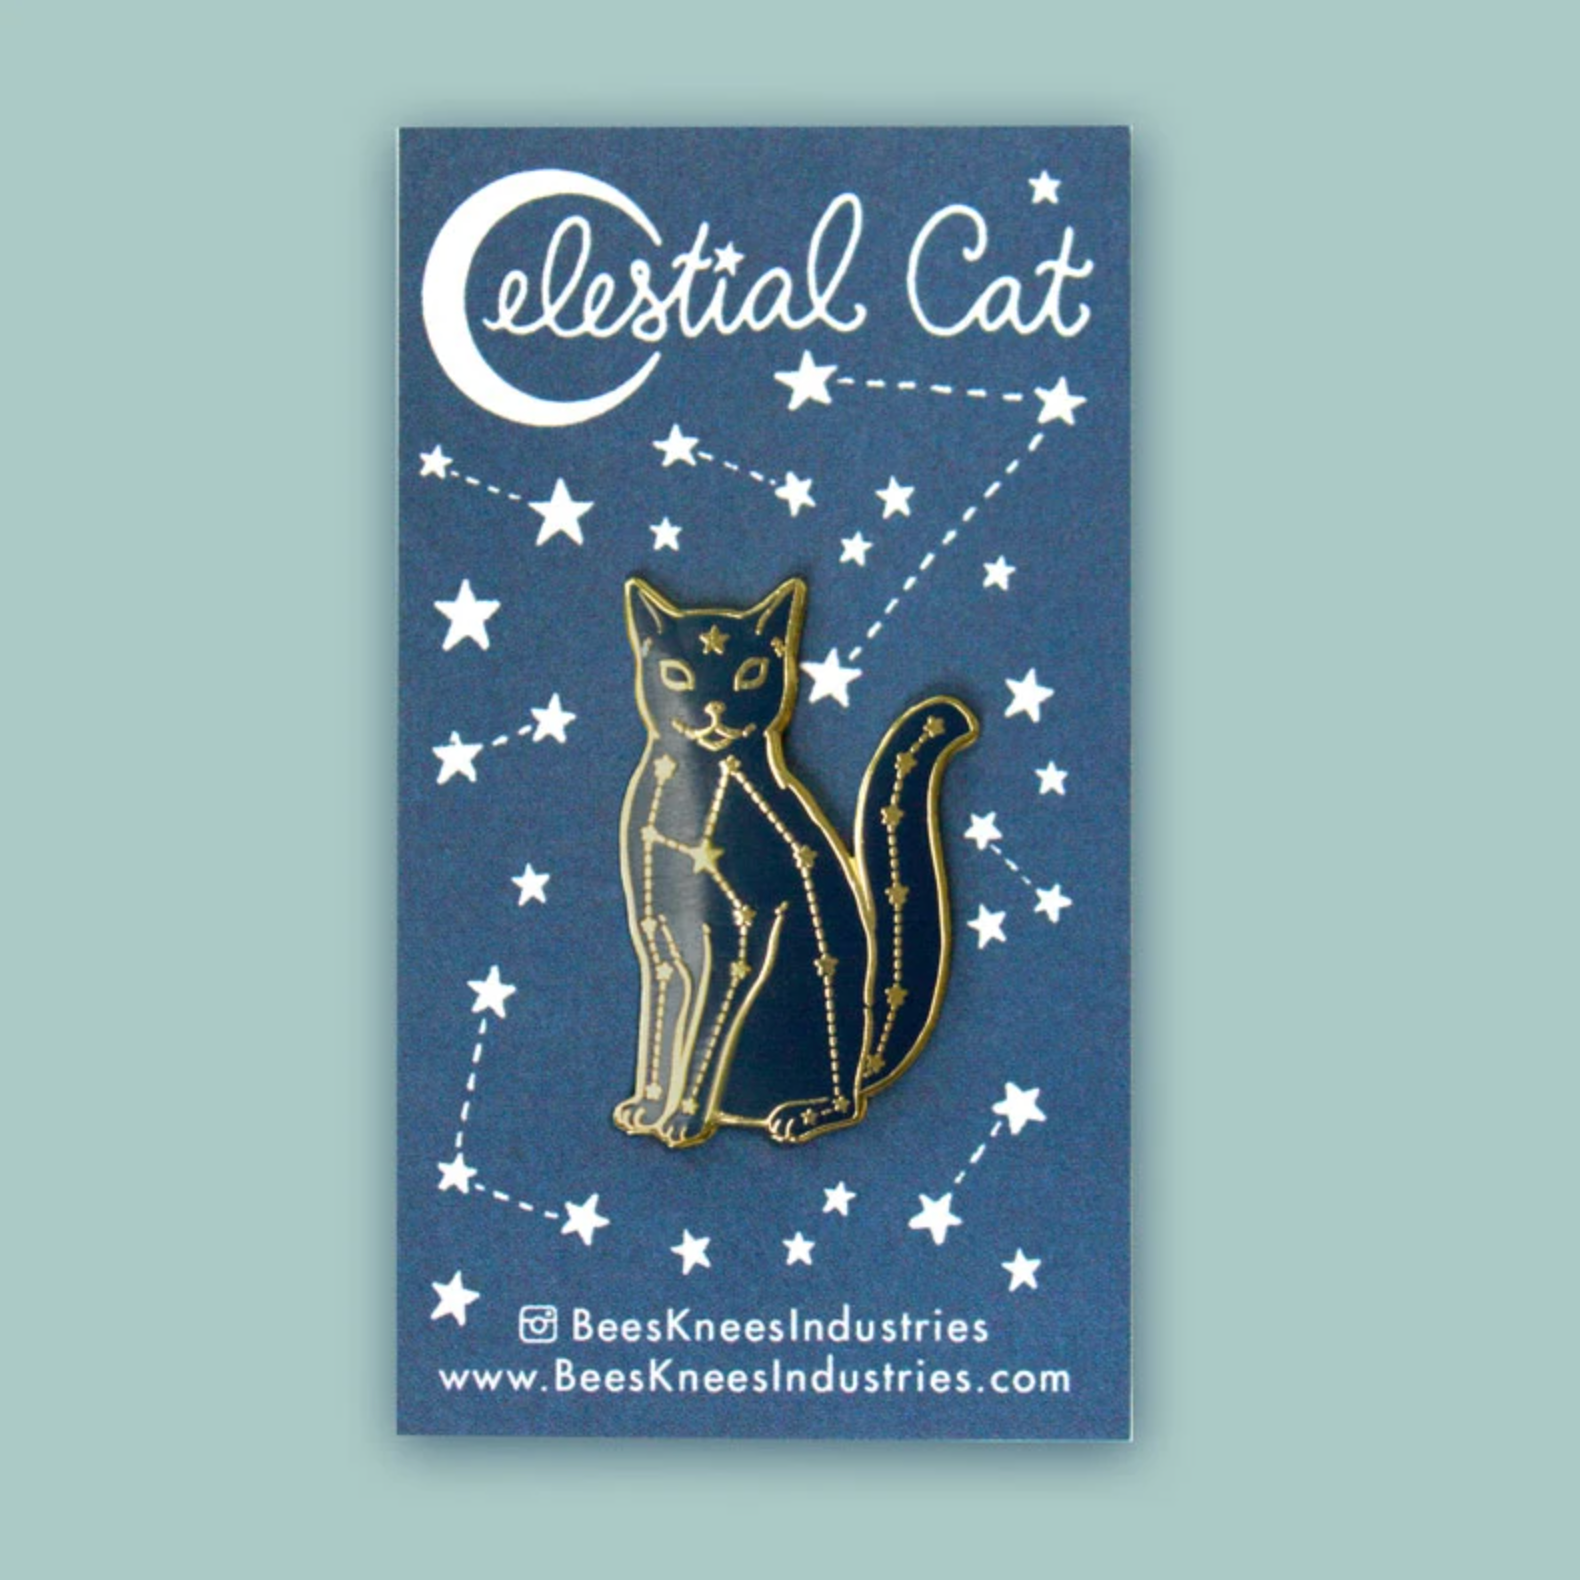 """Celestial Cat"" - Enamel Pin"